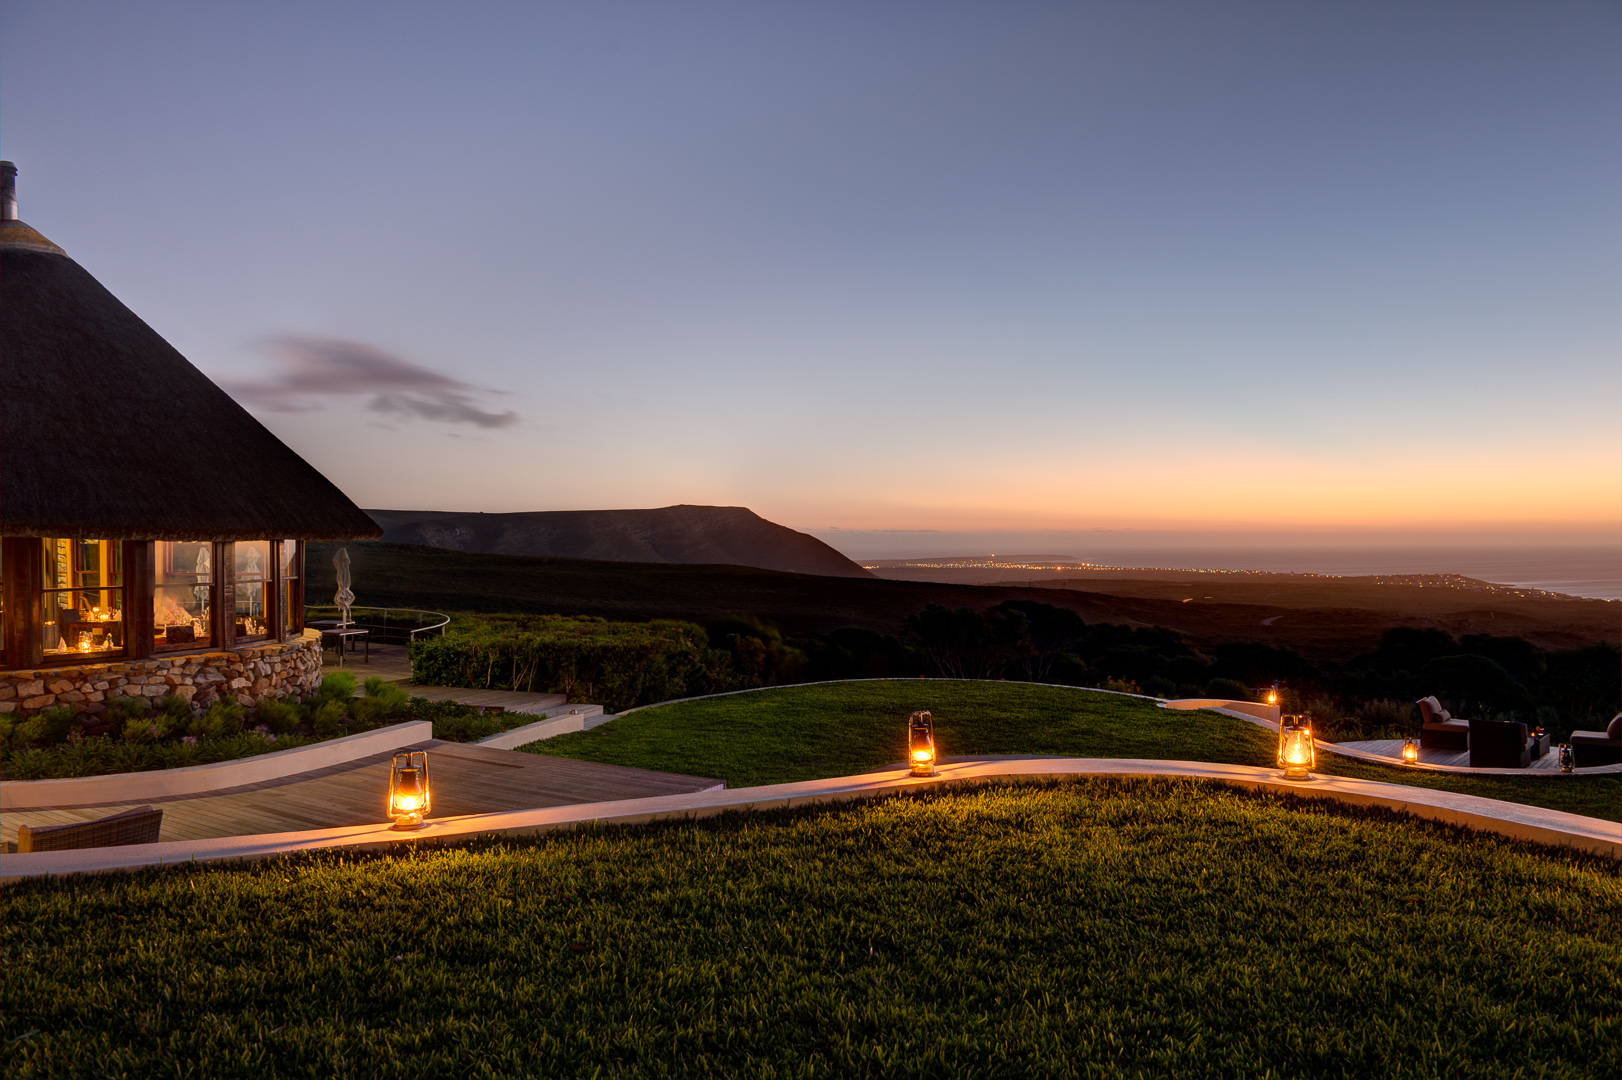 Grootbos-soft-lighting-adds-to-cosy-ambience-of-grootbos.jpg